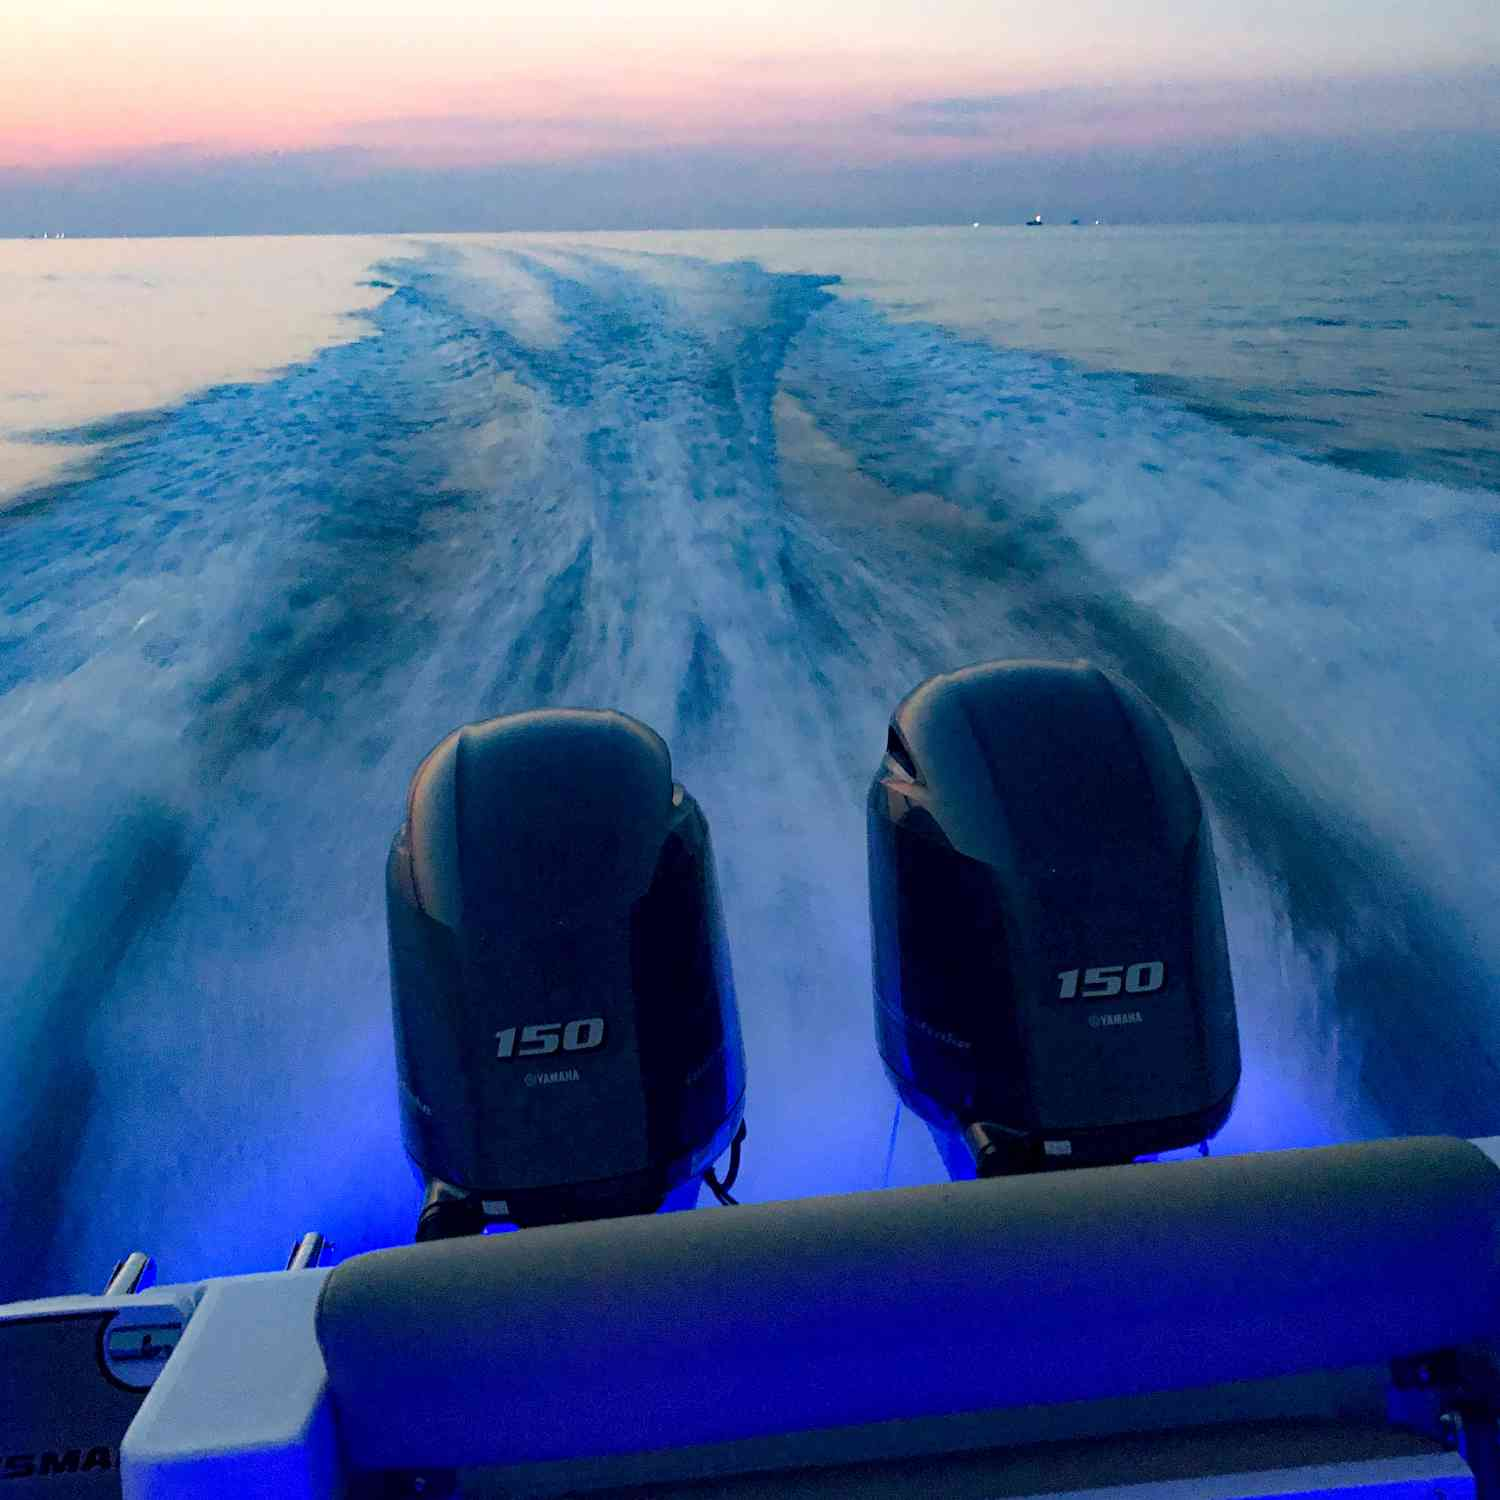 Title: Date night - On board their Sportsman Open 252 Center Console - Location: Atlantic Ocean Virginia Beach. Participating in the Photo Contest #SportsmanDecember2020